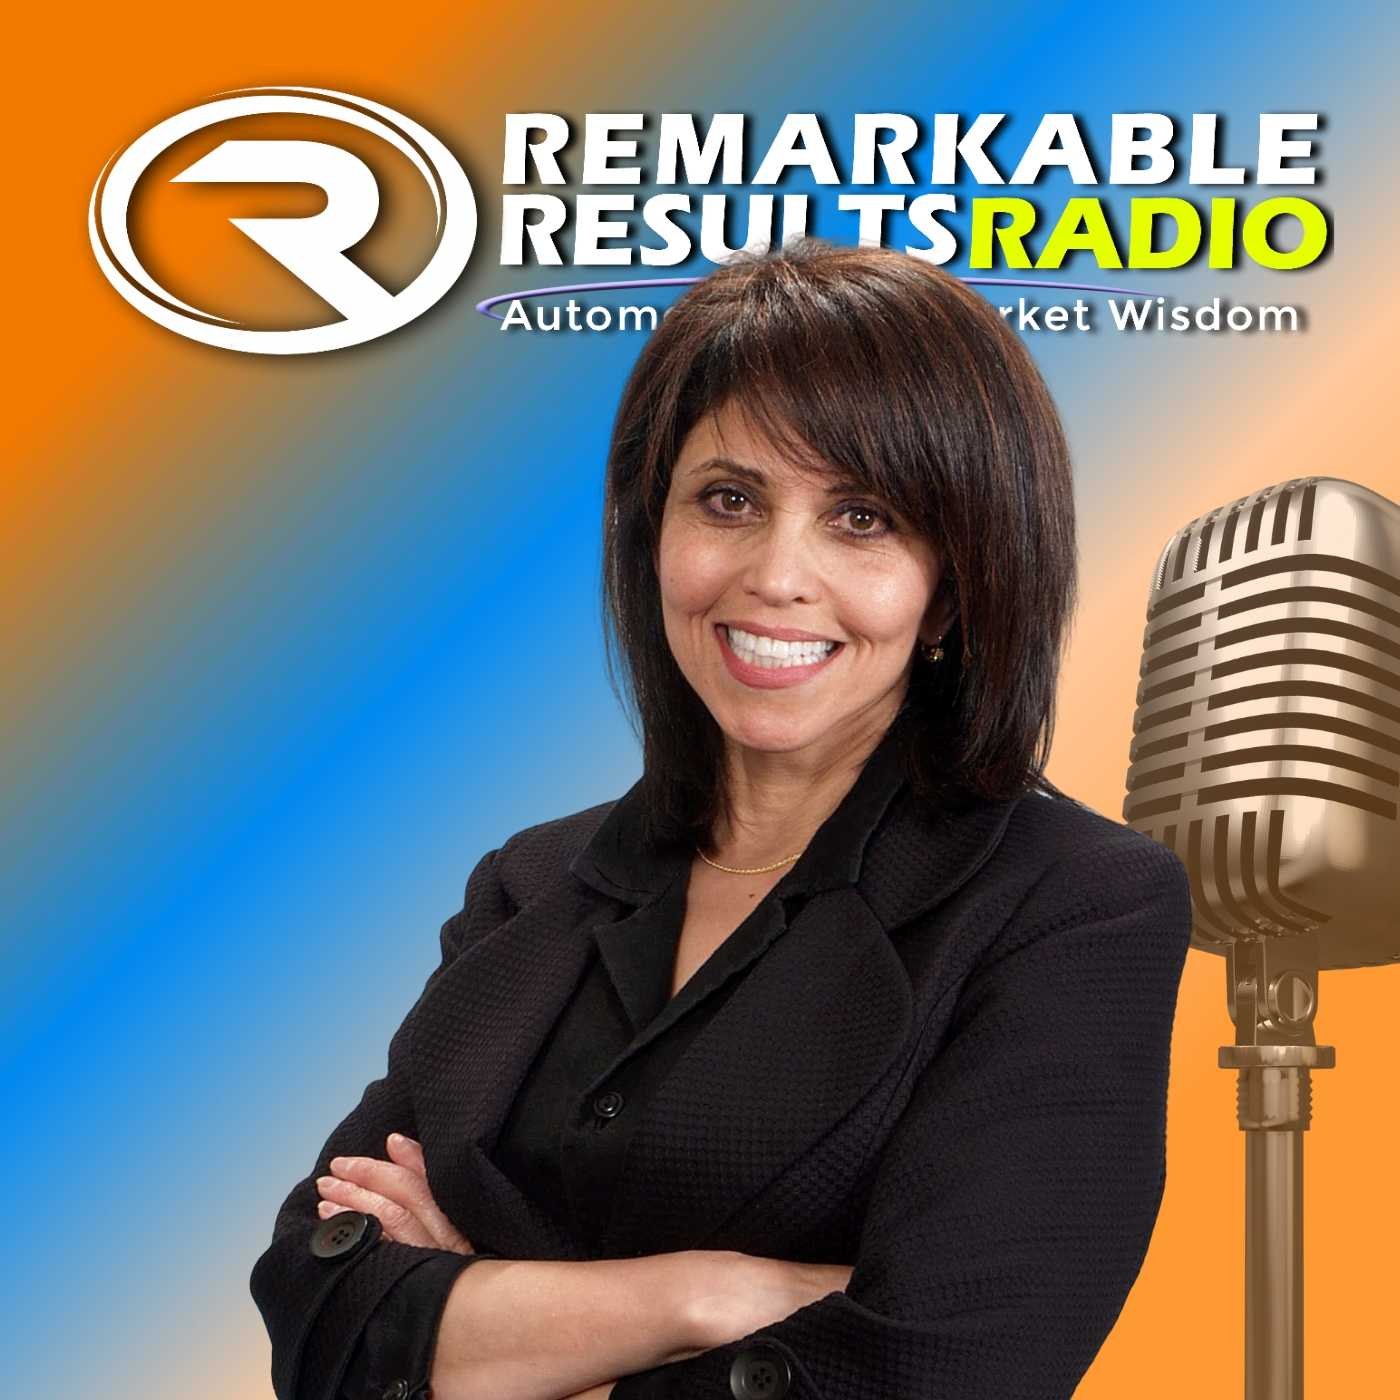 Artwork for podcast Remarkable Results Radio Podcast